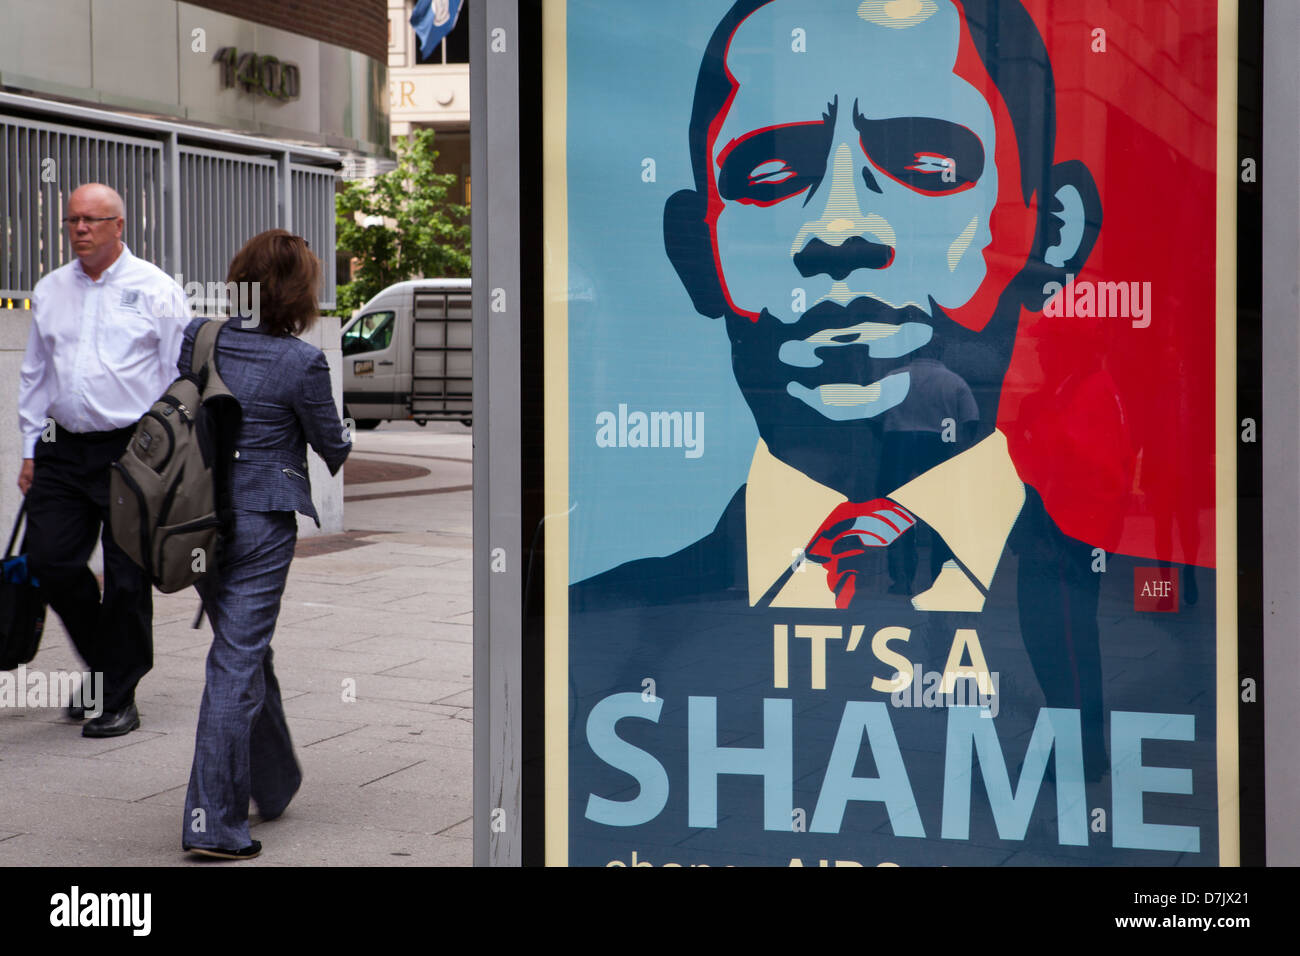 It's A Shame Obama ad in Washington, DC - Stock Image